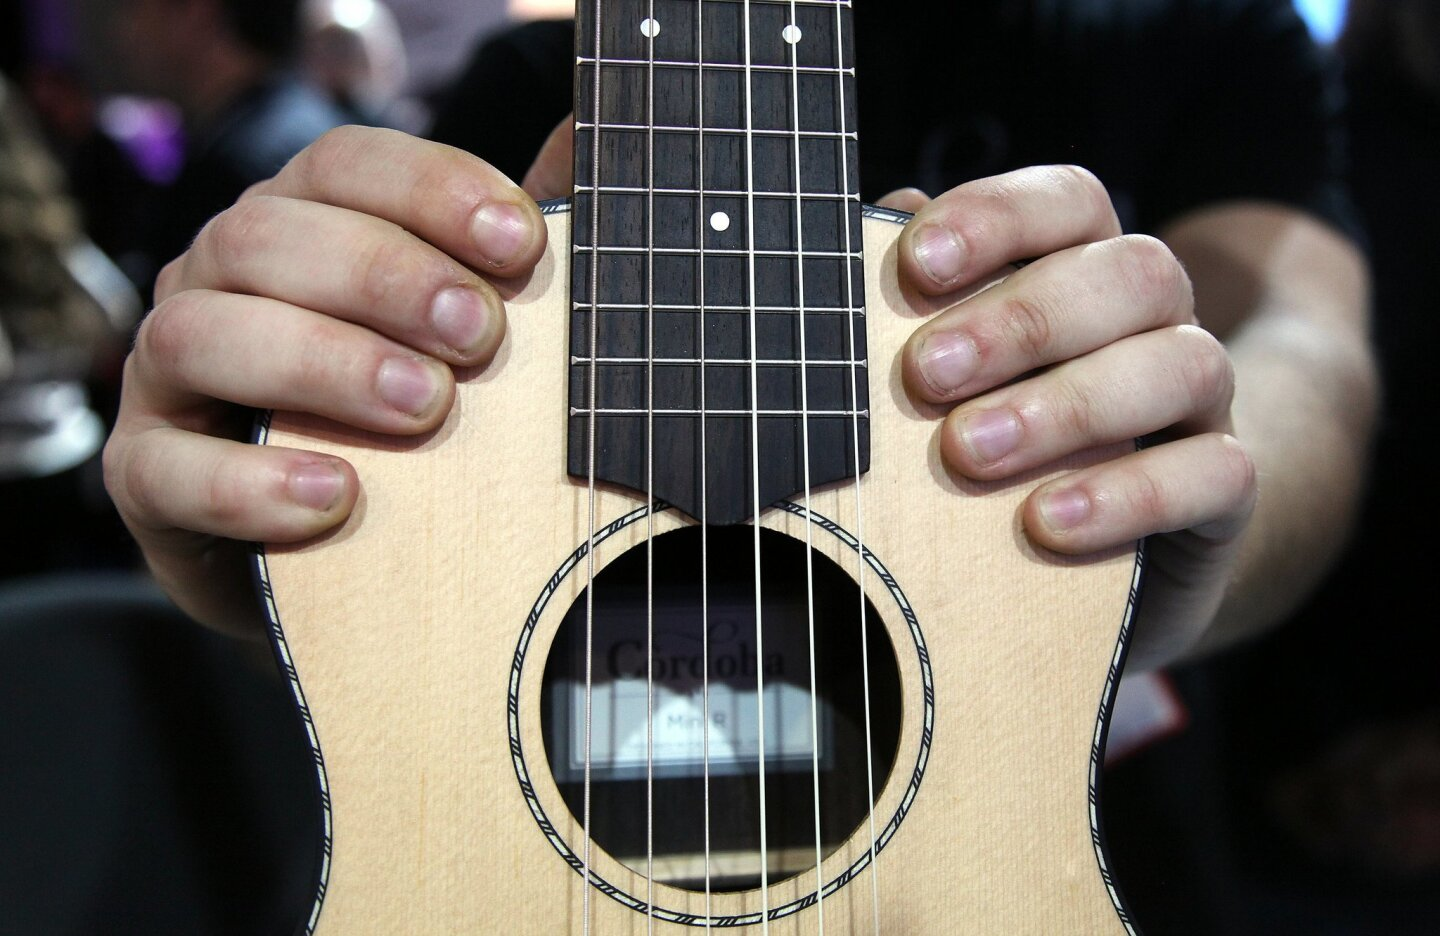 The Cordobo Mini Guitar is a small nylon-string guitar with the playability of a full-size guitar in a portable size.